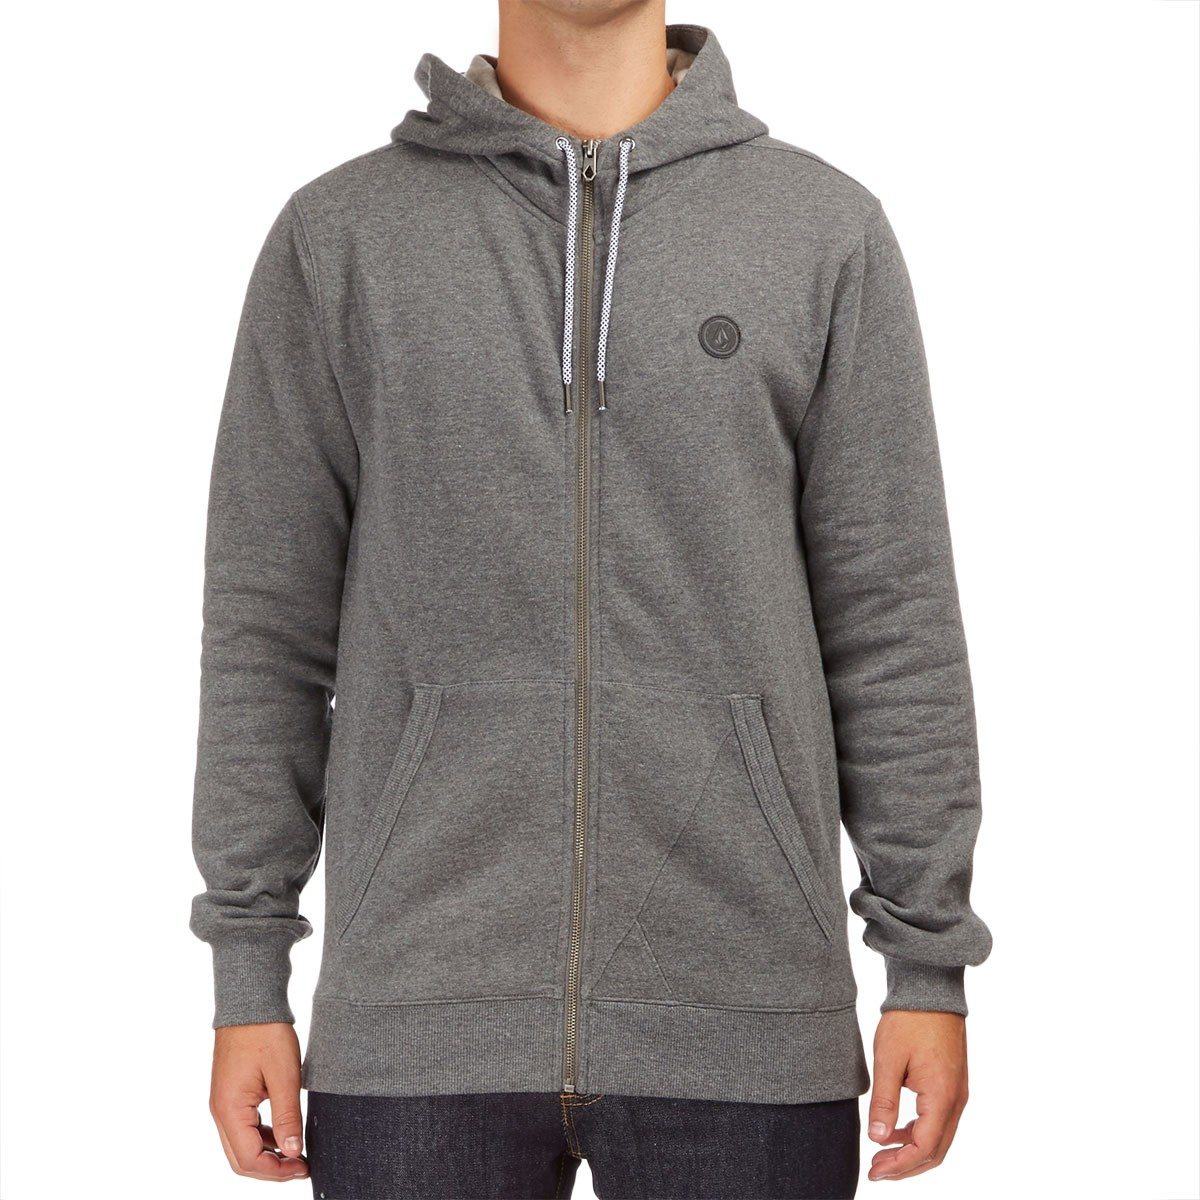 Volcom Sweatshirts And Hoodies | CCS.com